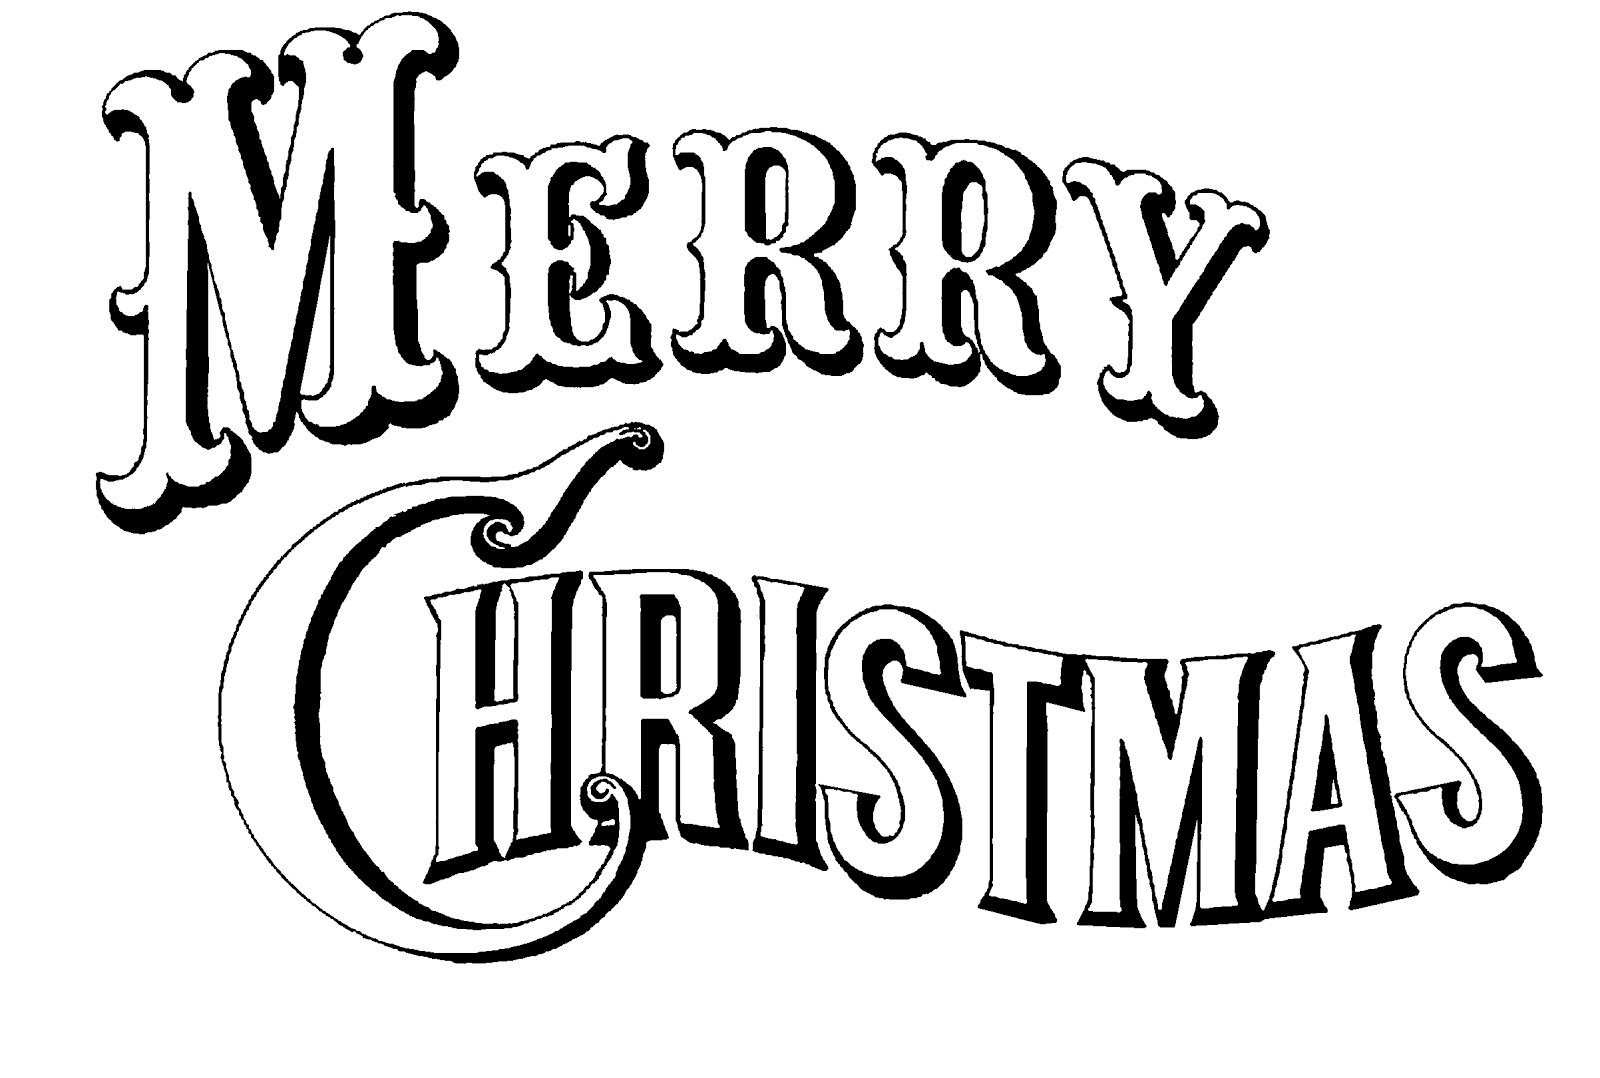 1600x1078 Merry Christmas Black Amp White Image, Created From A Currier